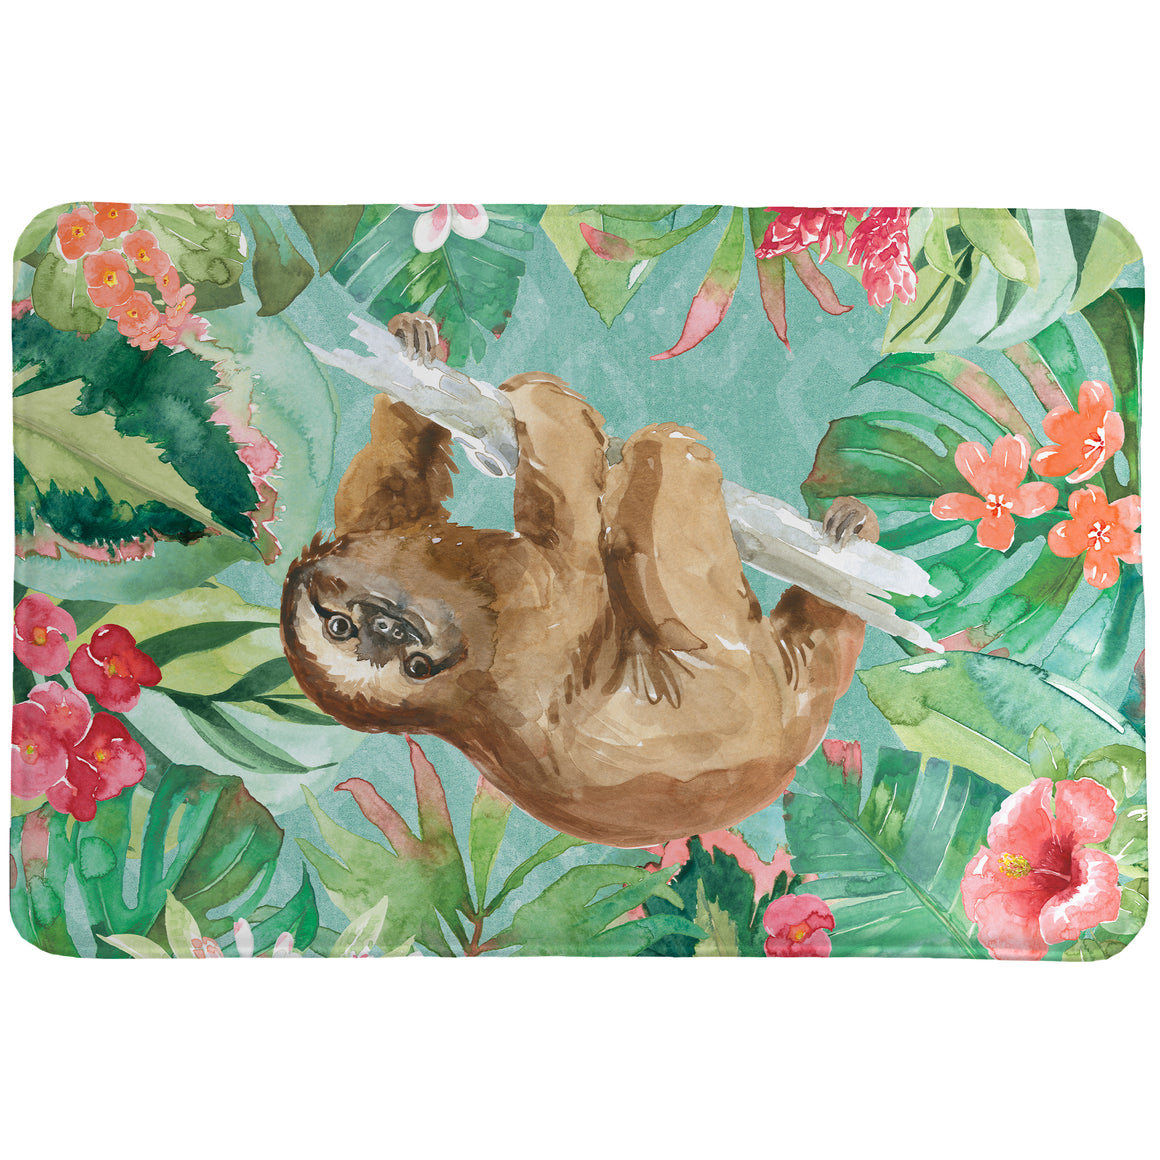 Sloth in the Jungle Memory Foam Rug